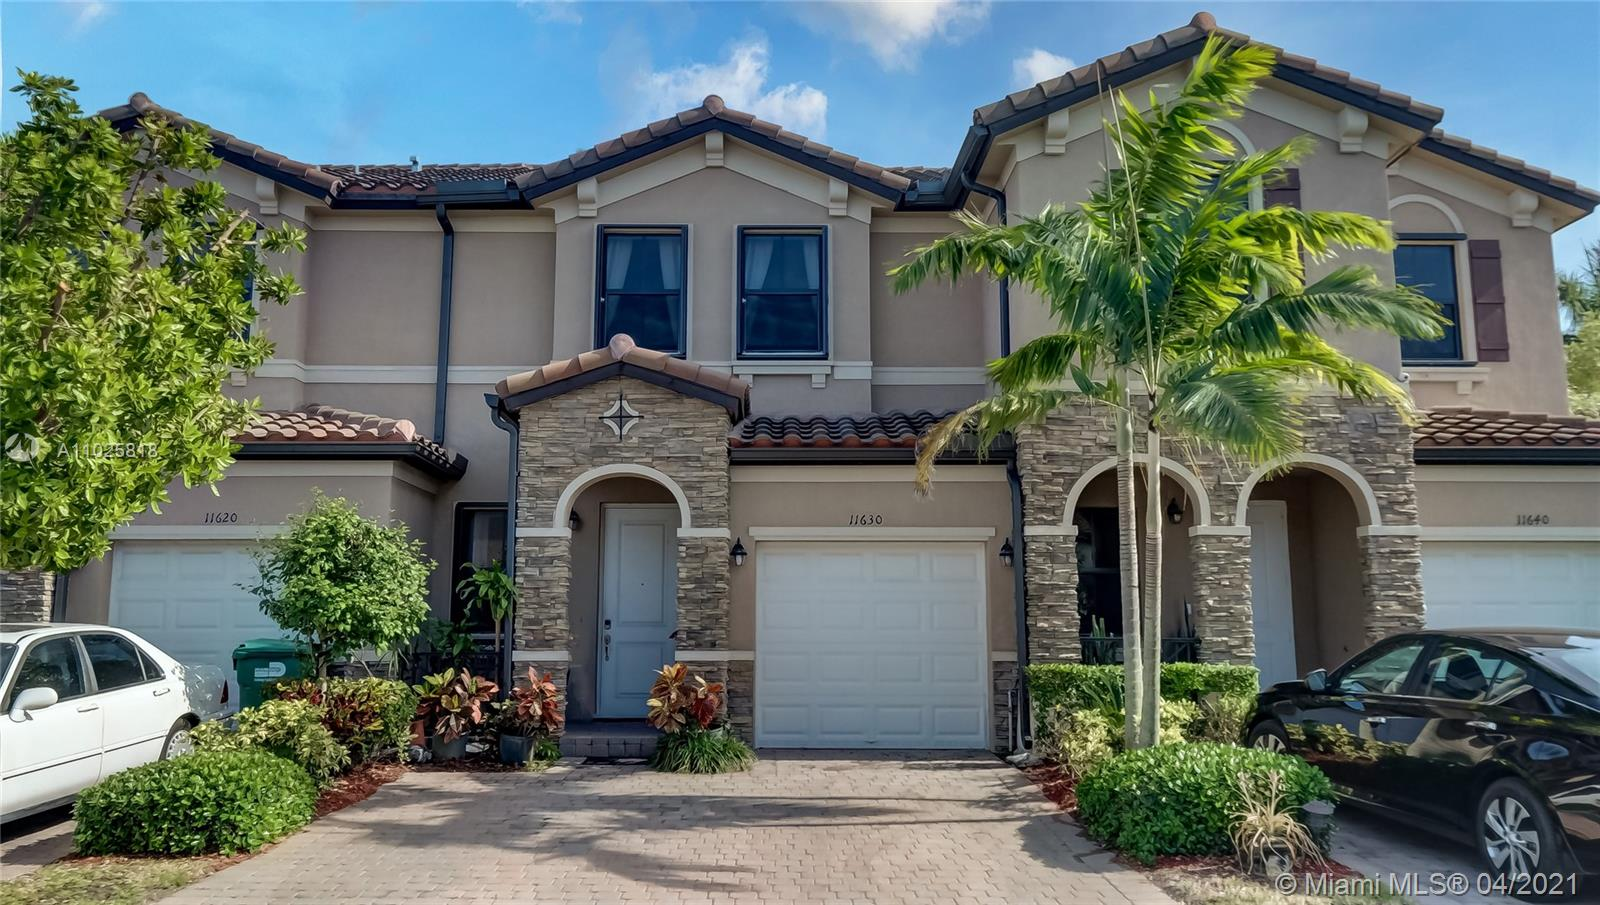 11630 SW 254th St Property Photo - Homestead, FL real estate listing